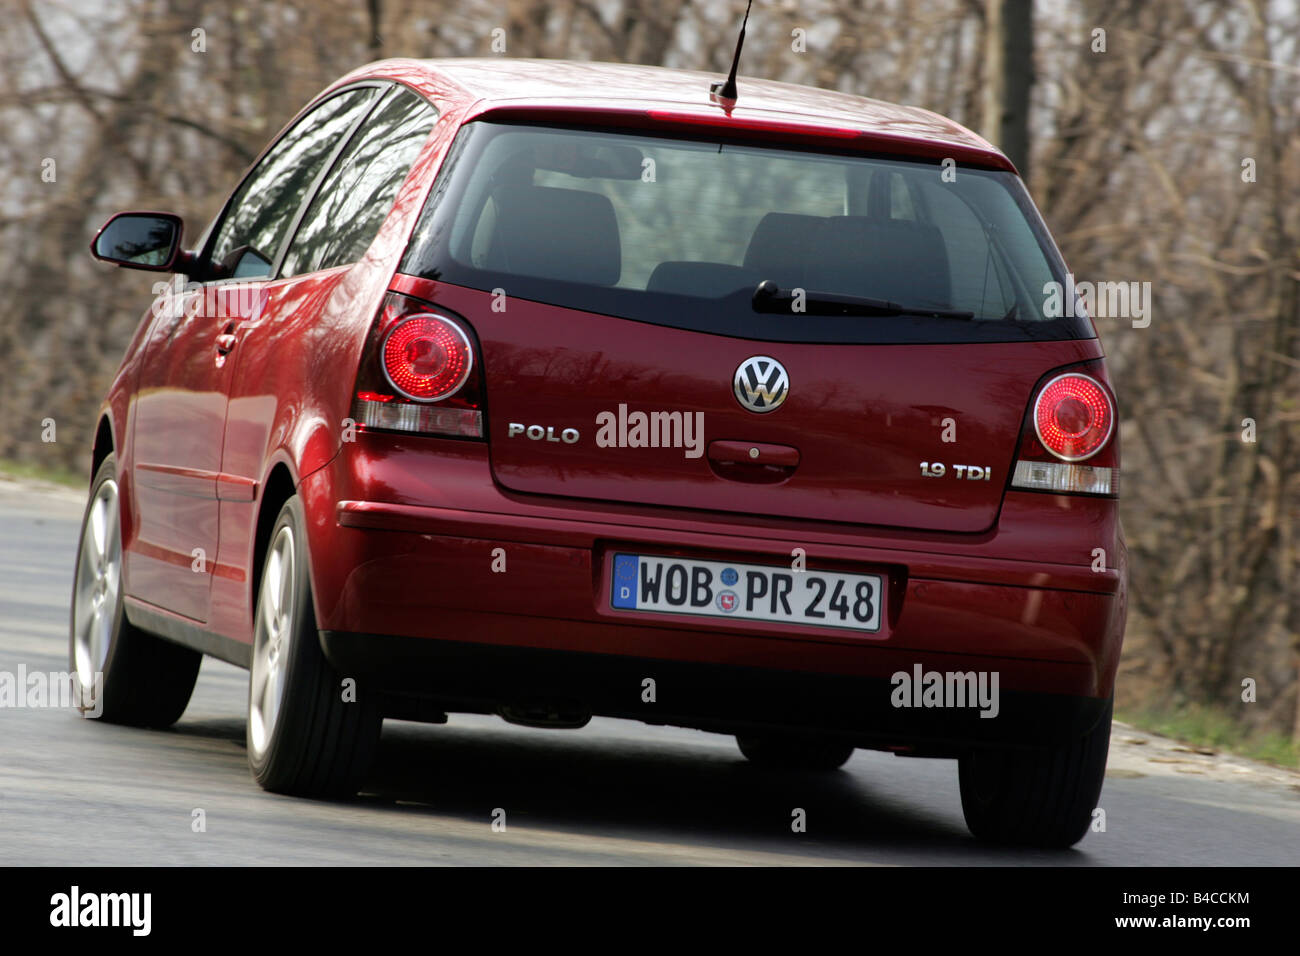 car vw volkswagen polo 1 4 tdi model year 2005 ruby colored stock photo royalty free image. Black Bedroom Furniture Sets. Home Design Ideas